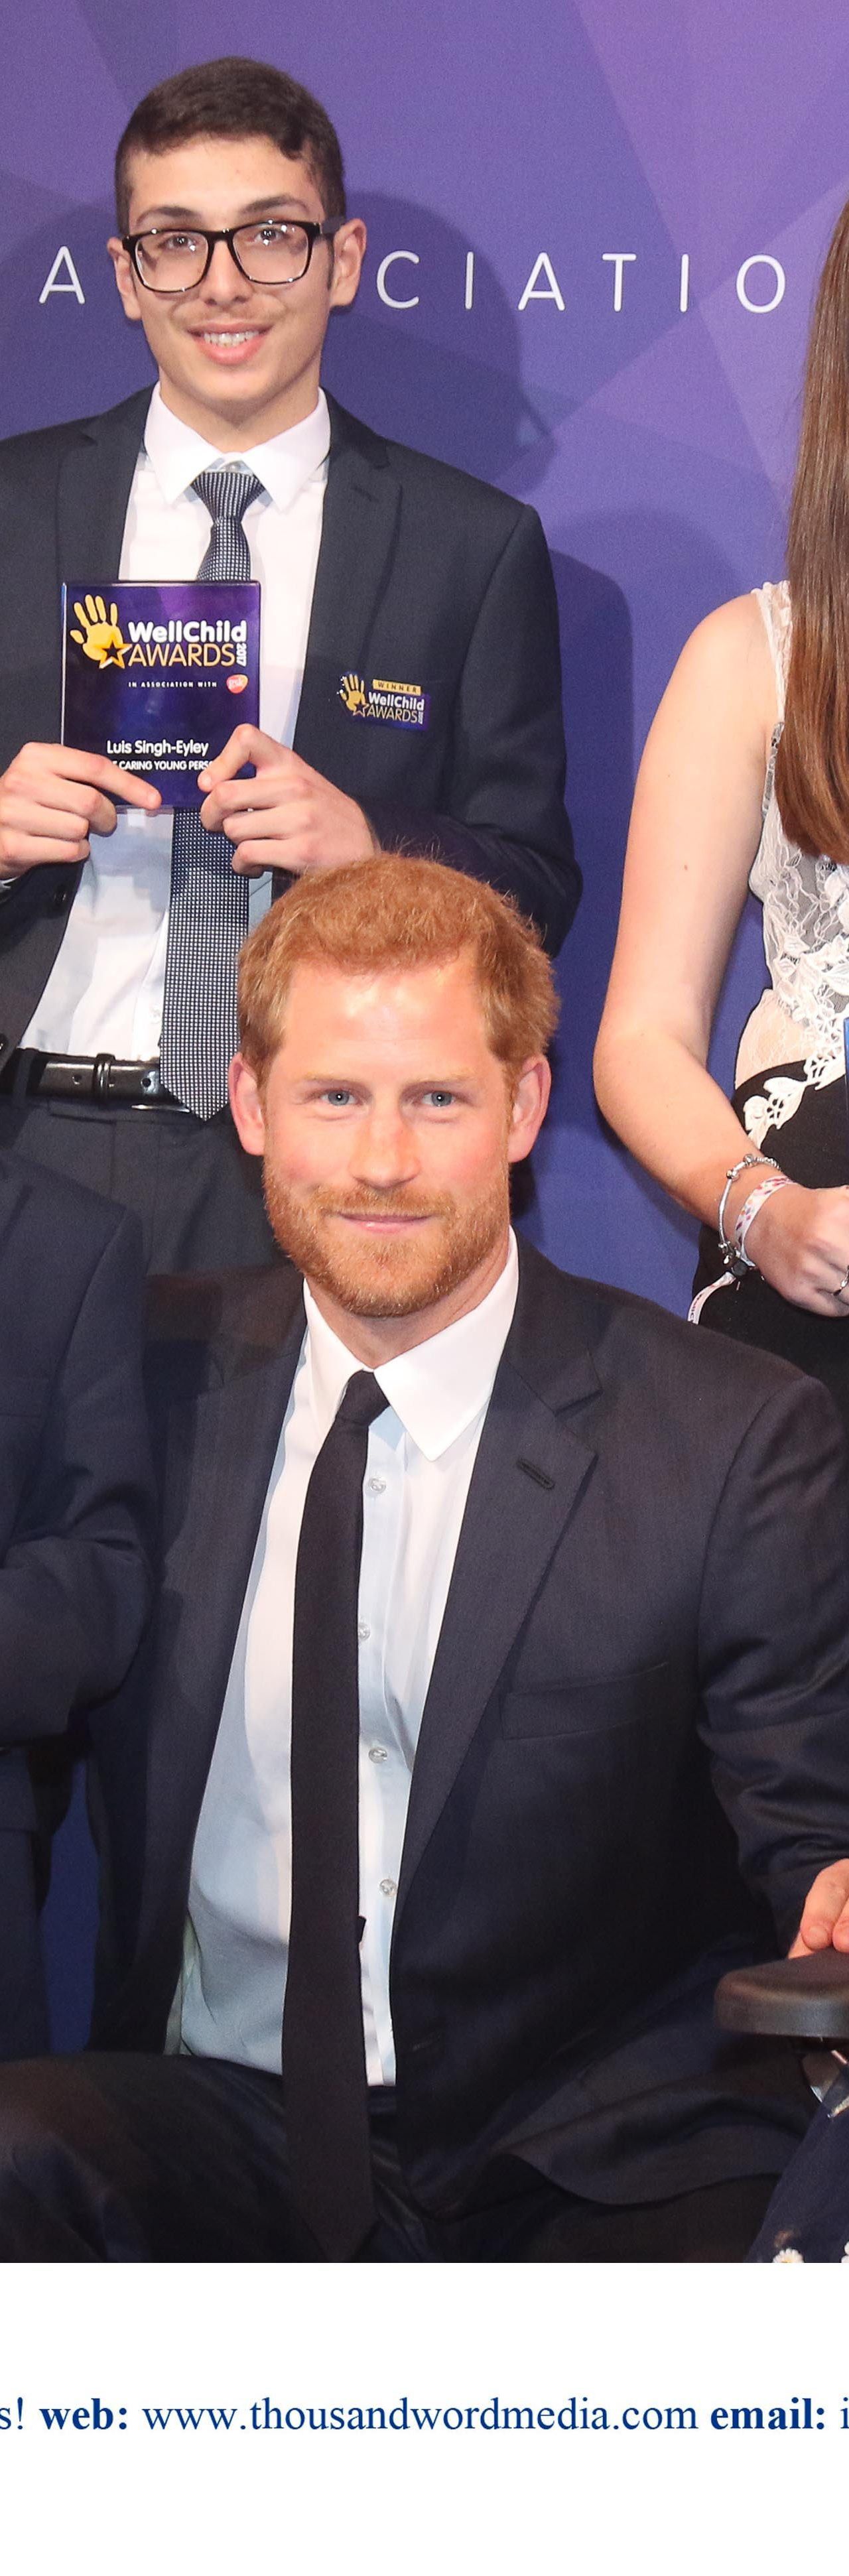 Prince Henry of Wales attends a Reception and Awards Ceremony